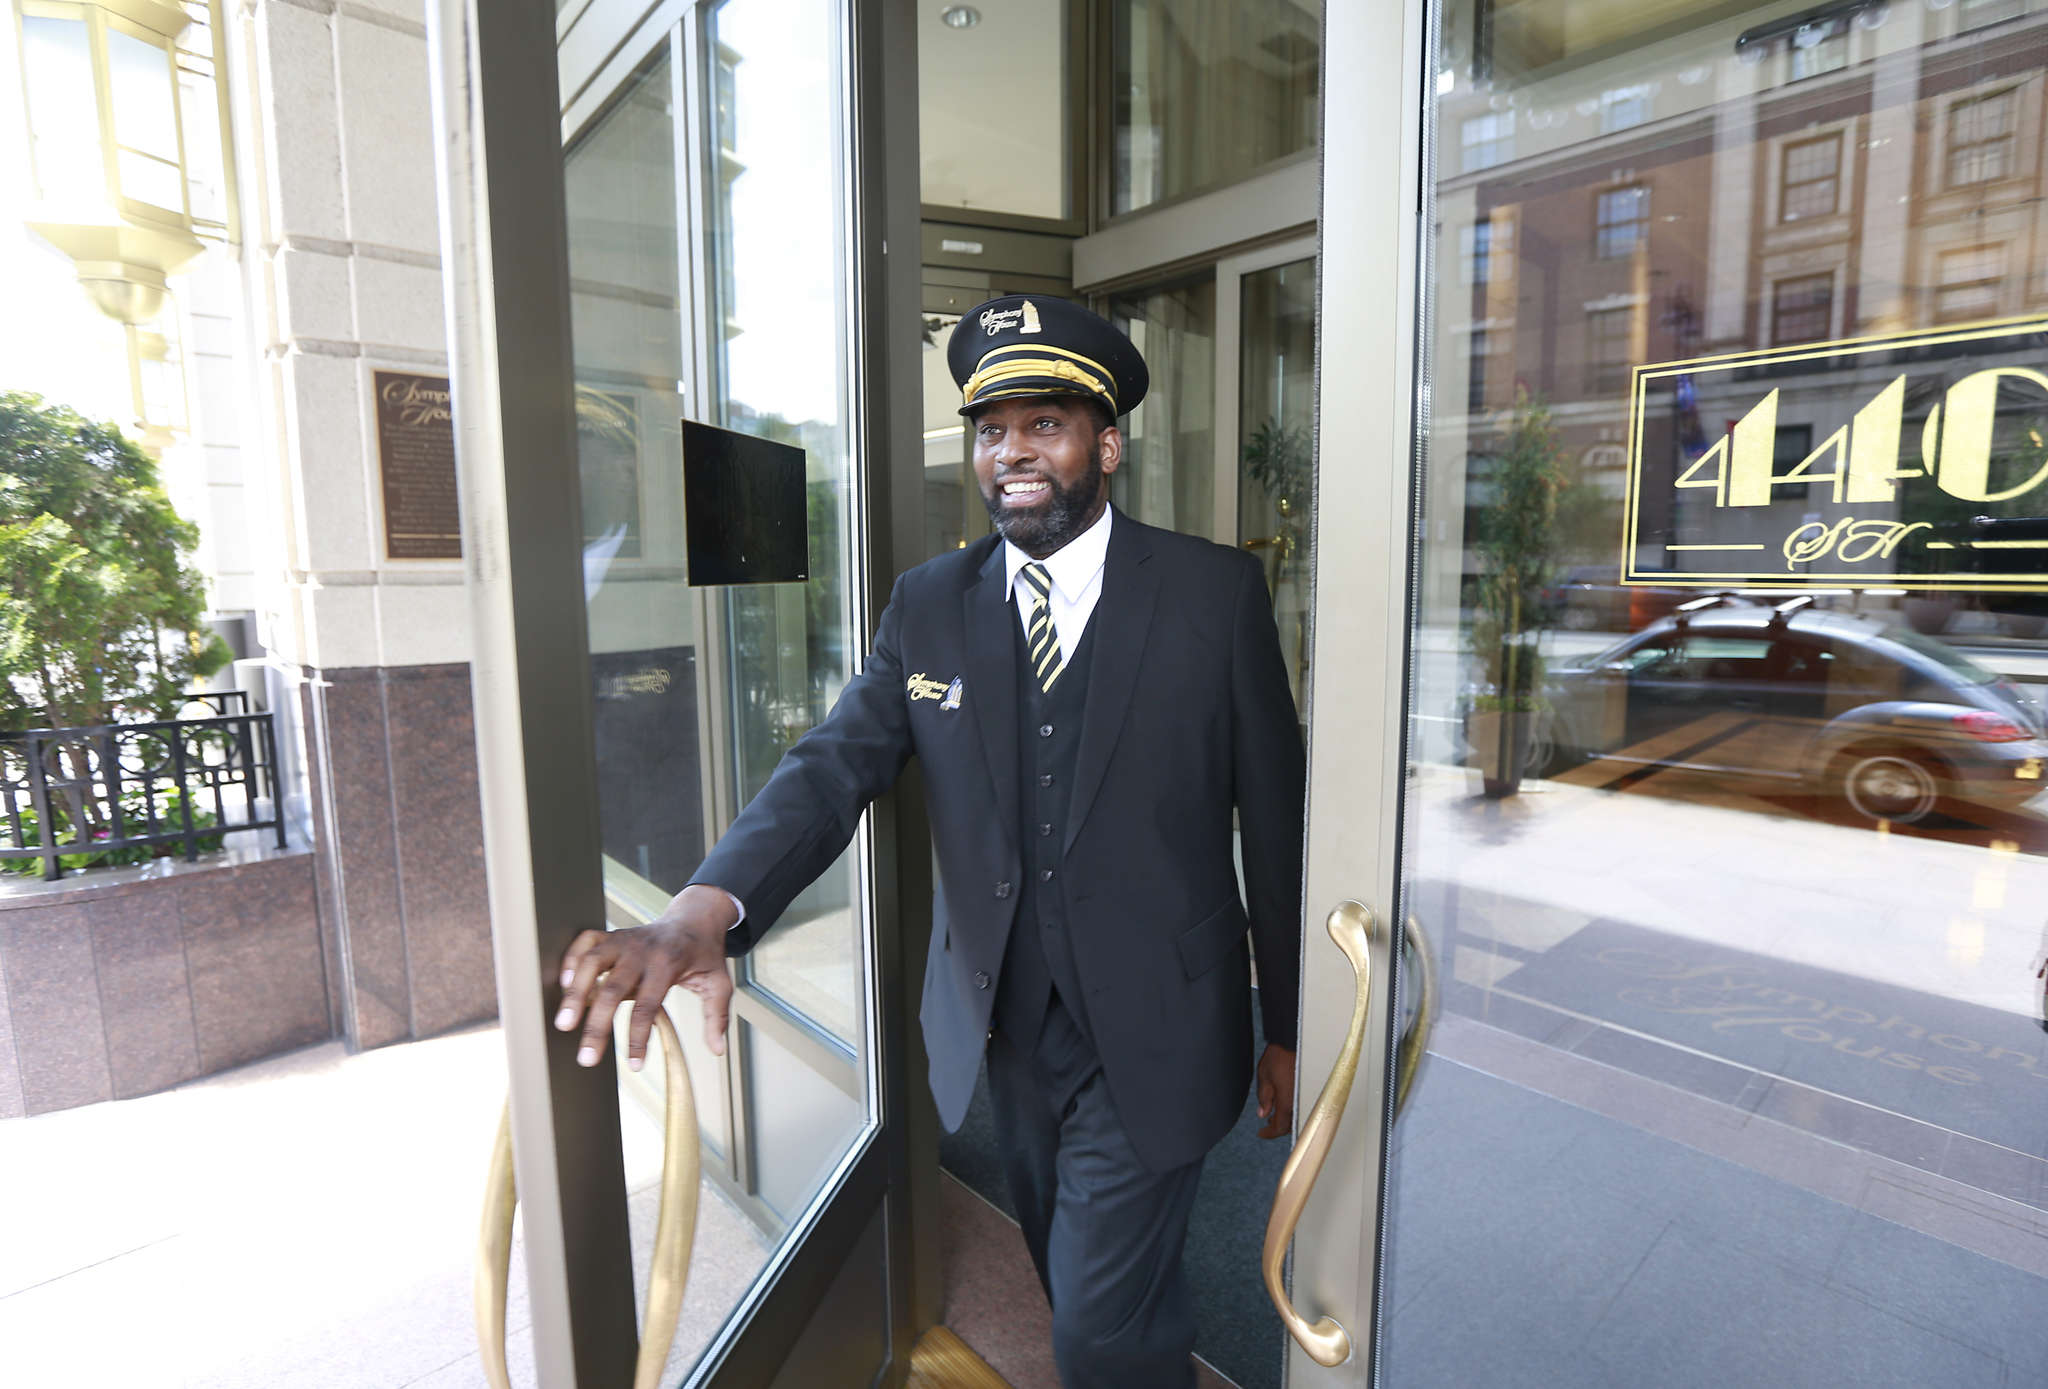 Andrew Monroe (above) is the doorman at Symphony House on South Broad Street. Buyers pick condos because of the convenience of one-level living, and the security of a doorman. DAVID SWANSON